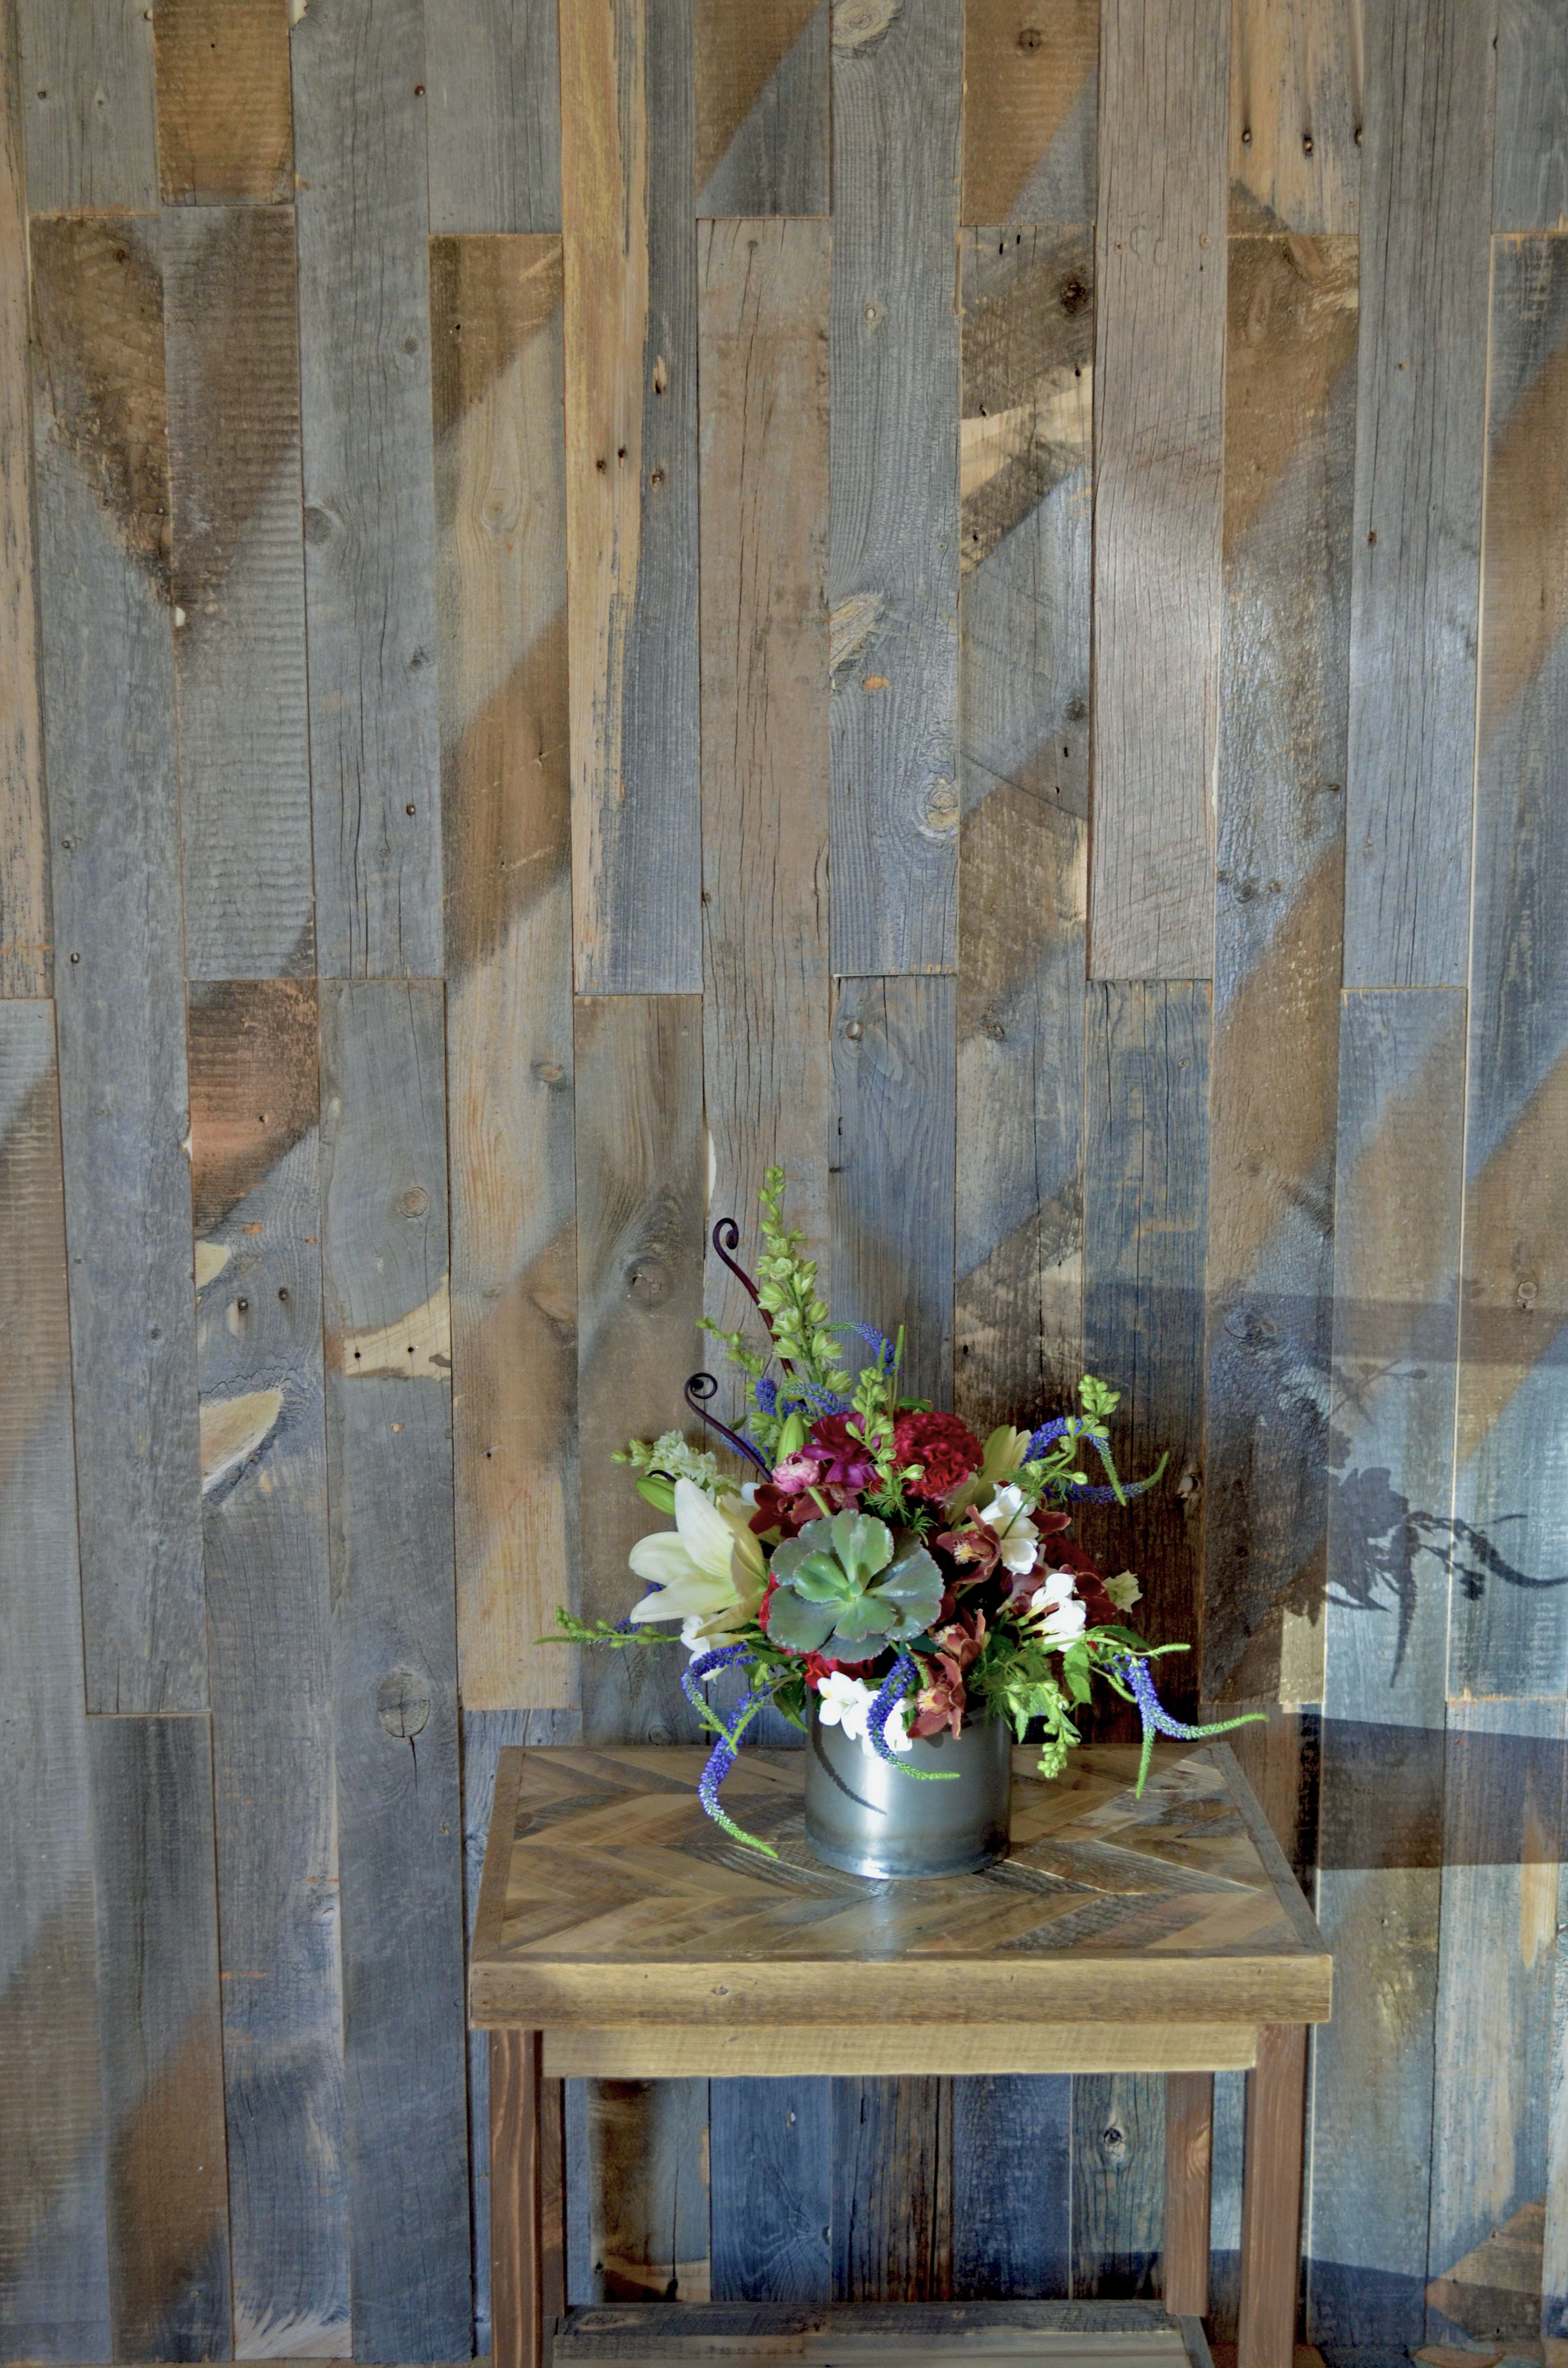 Vertical Wall Using Boards Of Different Thicknesses This Is Reclaimed Wood From Wyoming Snow Fences On In 2020 Reclaimed Wood Siding Wood Feature Wall Reclaimed Wood